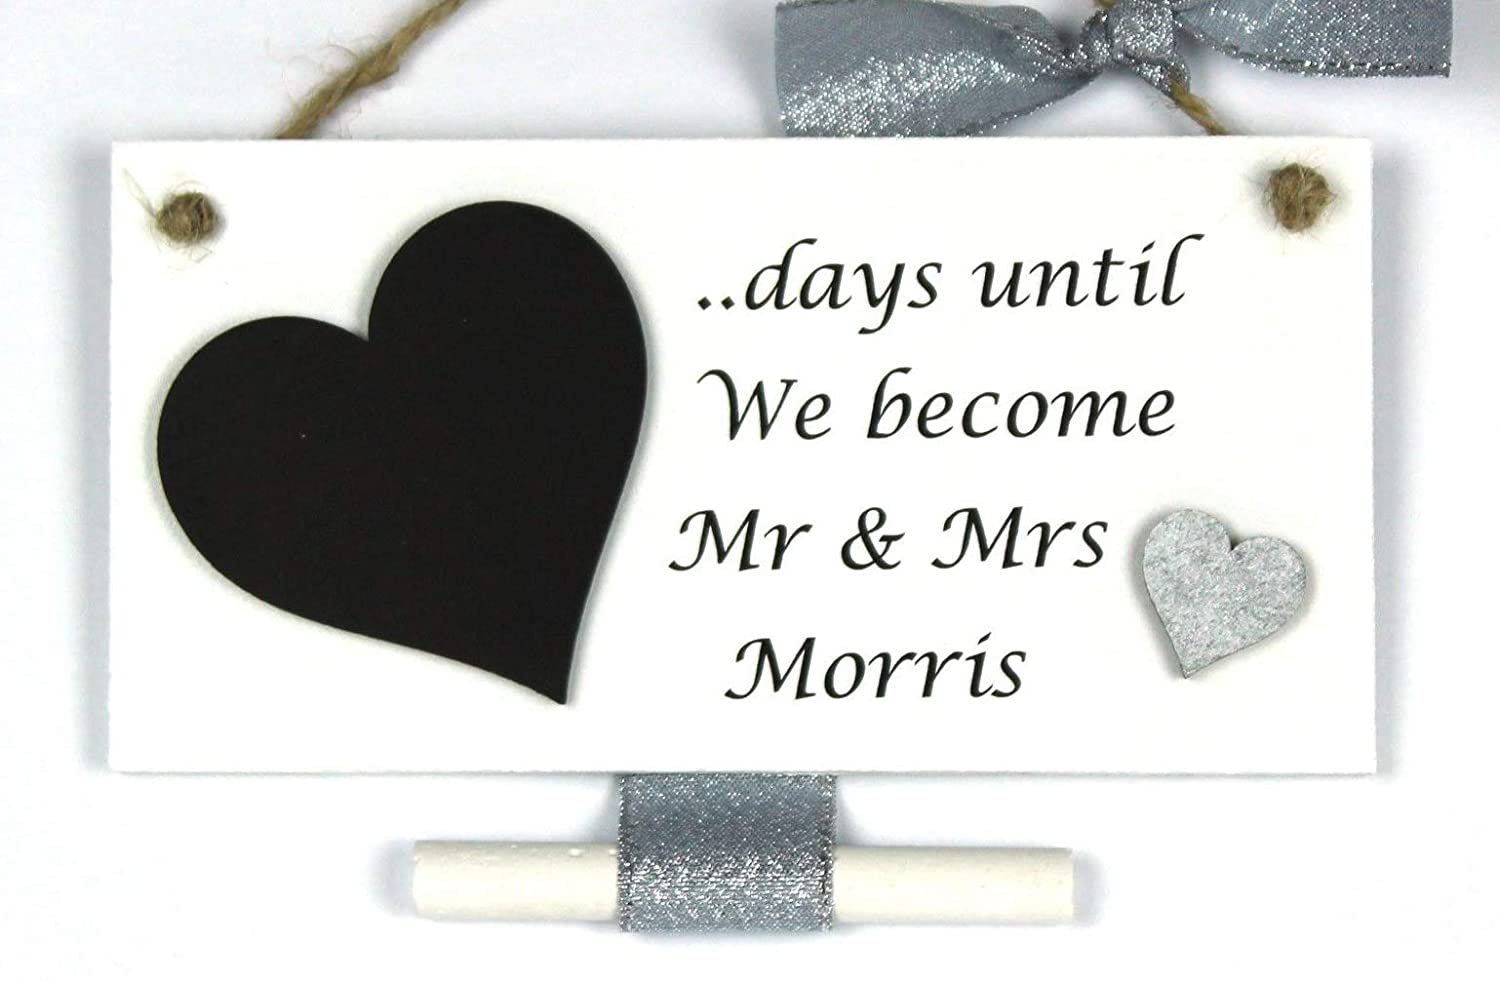 Handmade Personalised Wedding Countdown Plaque with Chalkboard Heart - Engagement Gift '..days until we become Mr & Mrs.....' silver ribbon & heart